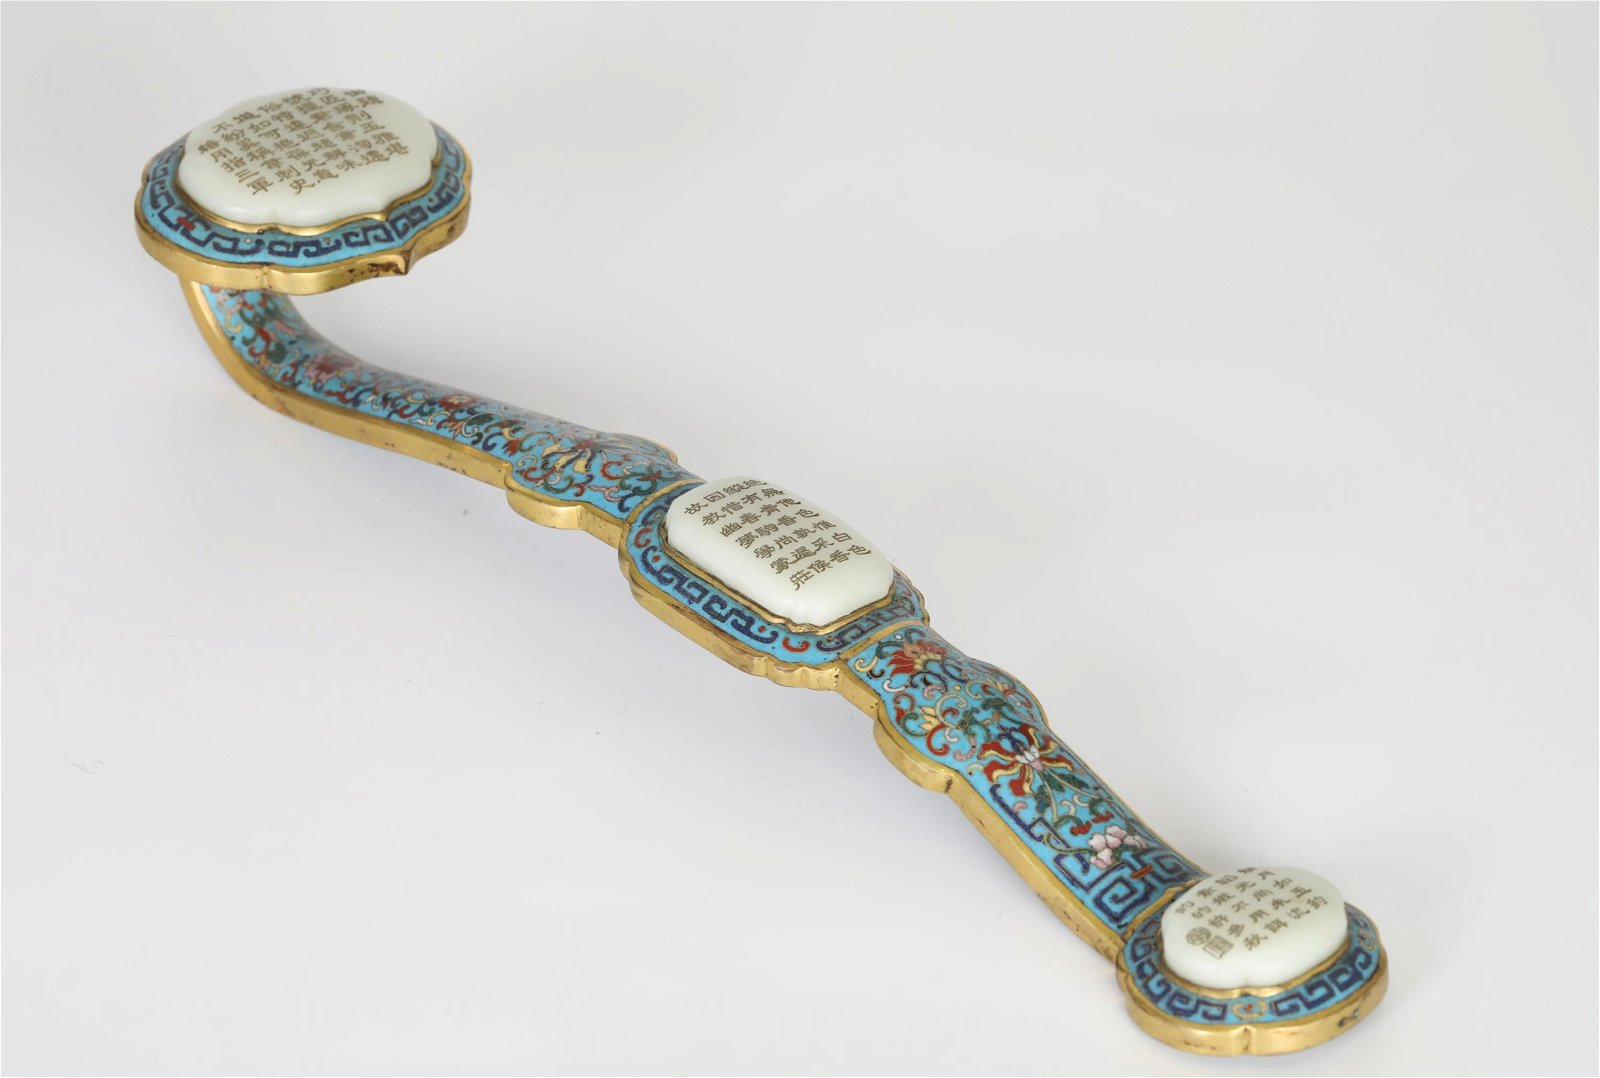 Chinese Cloisonne & Jade Ruyi Scepter